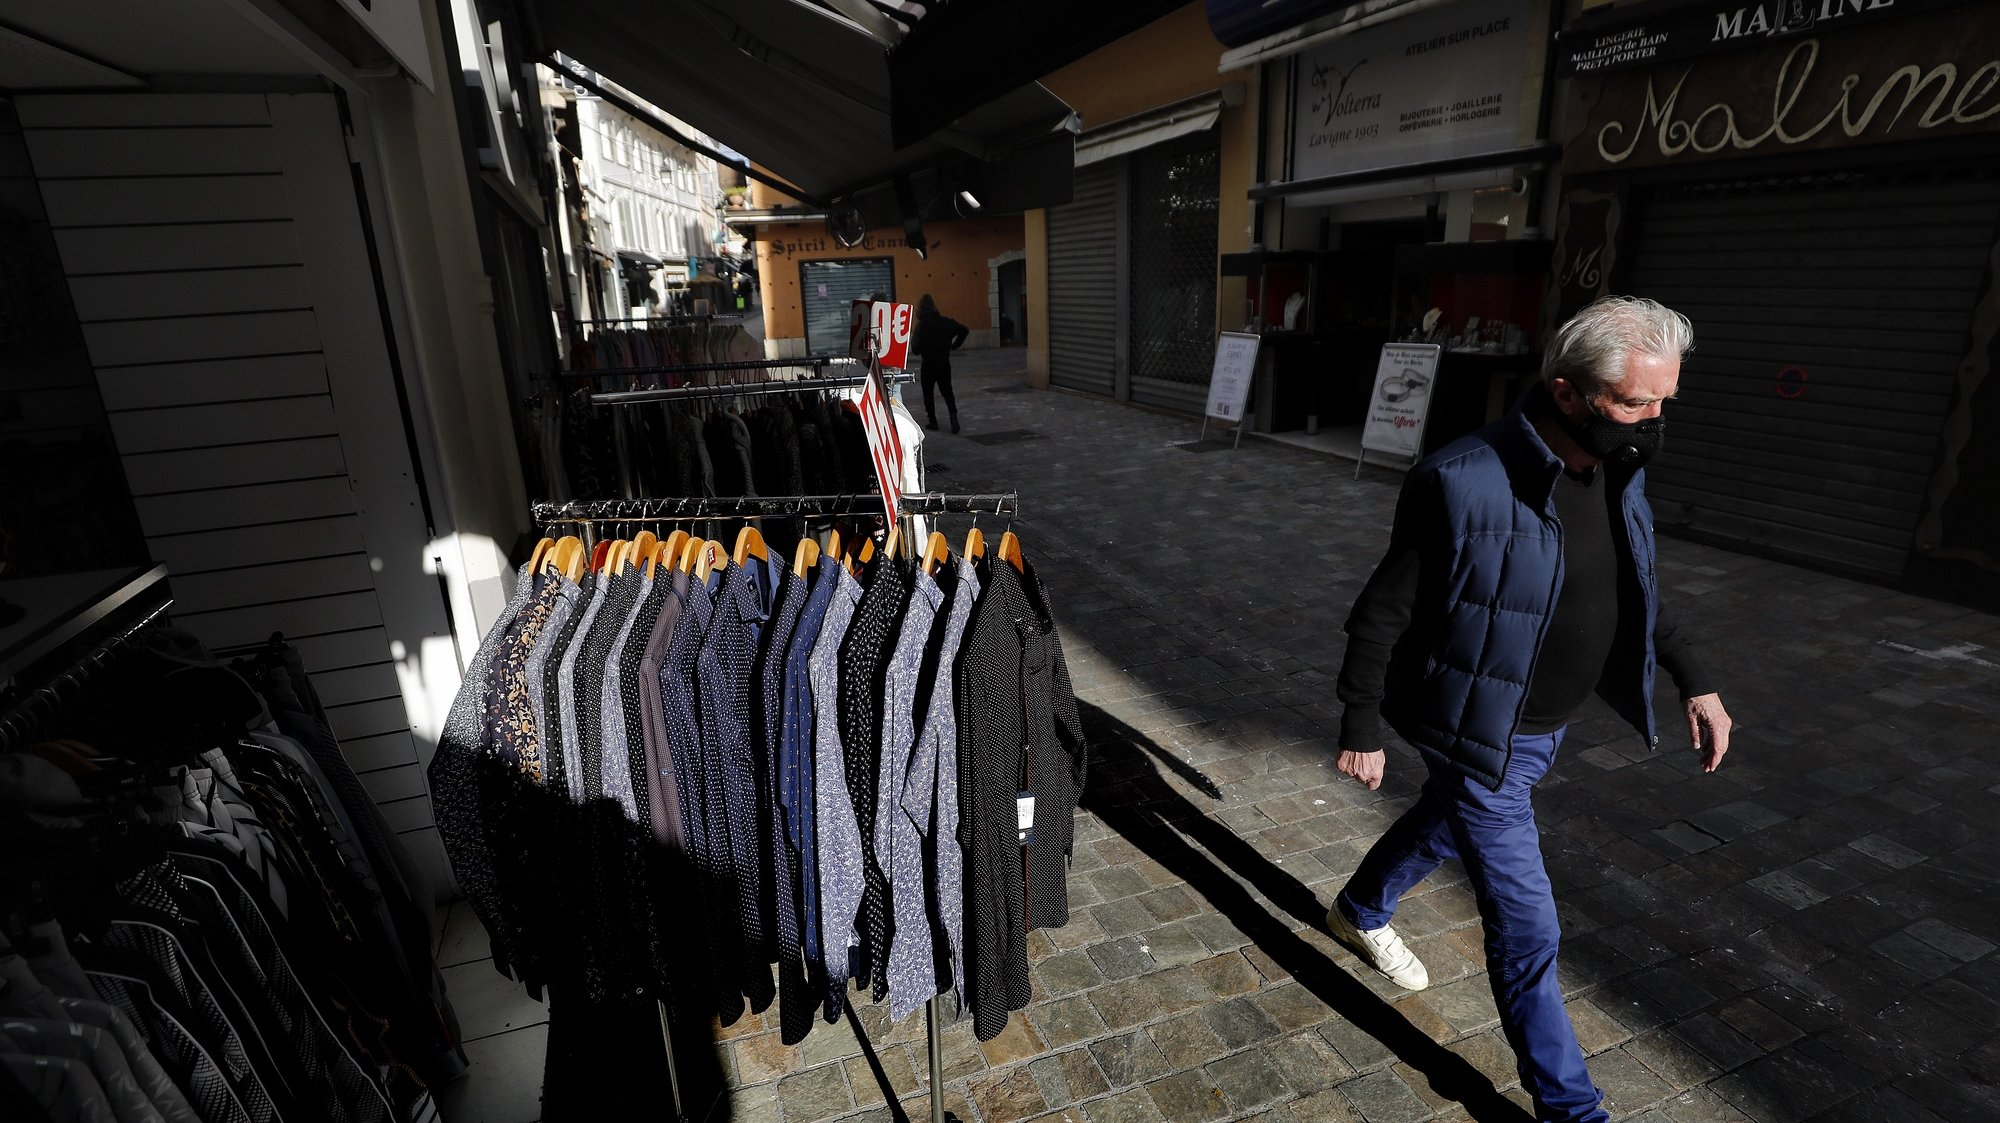 epa09097124 A man walks past a clothing store that displays these clothes on the streets during the lockdown in Cannes, France, 25 March 2021. New COVID-19 lockdown restrictions include the closure of 'non-essential' businesses, but the town halls of Cannes, Antibes, and Menton allow the sale of non-essential outdoor businesses.  EPA/SEBASTIEN NOGIER